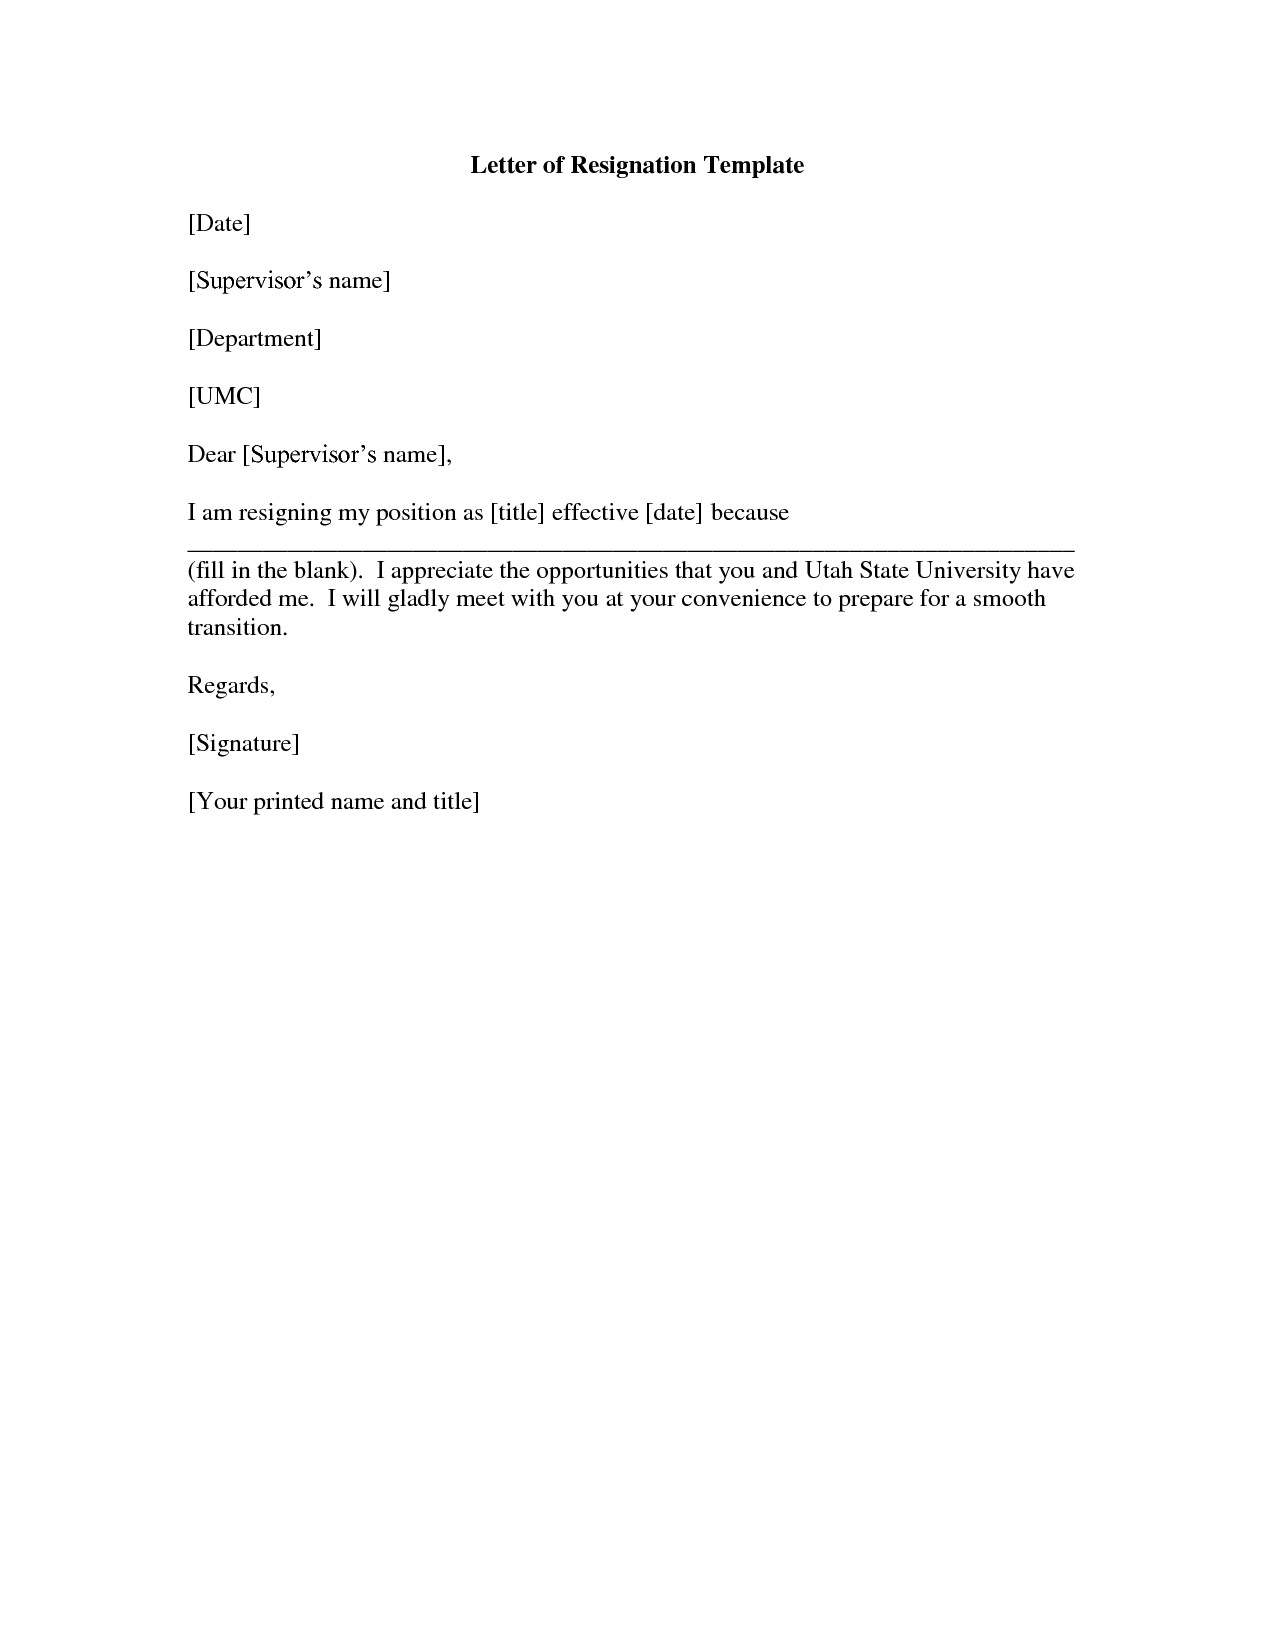 Letter Of Resignation Templates Free Printable Letter Of Resignation form Generic